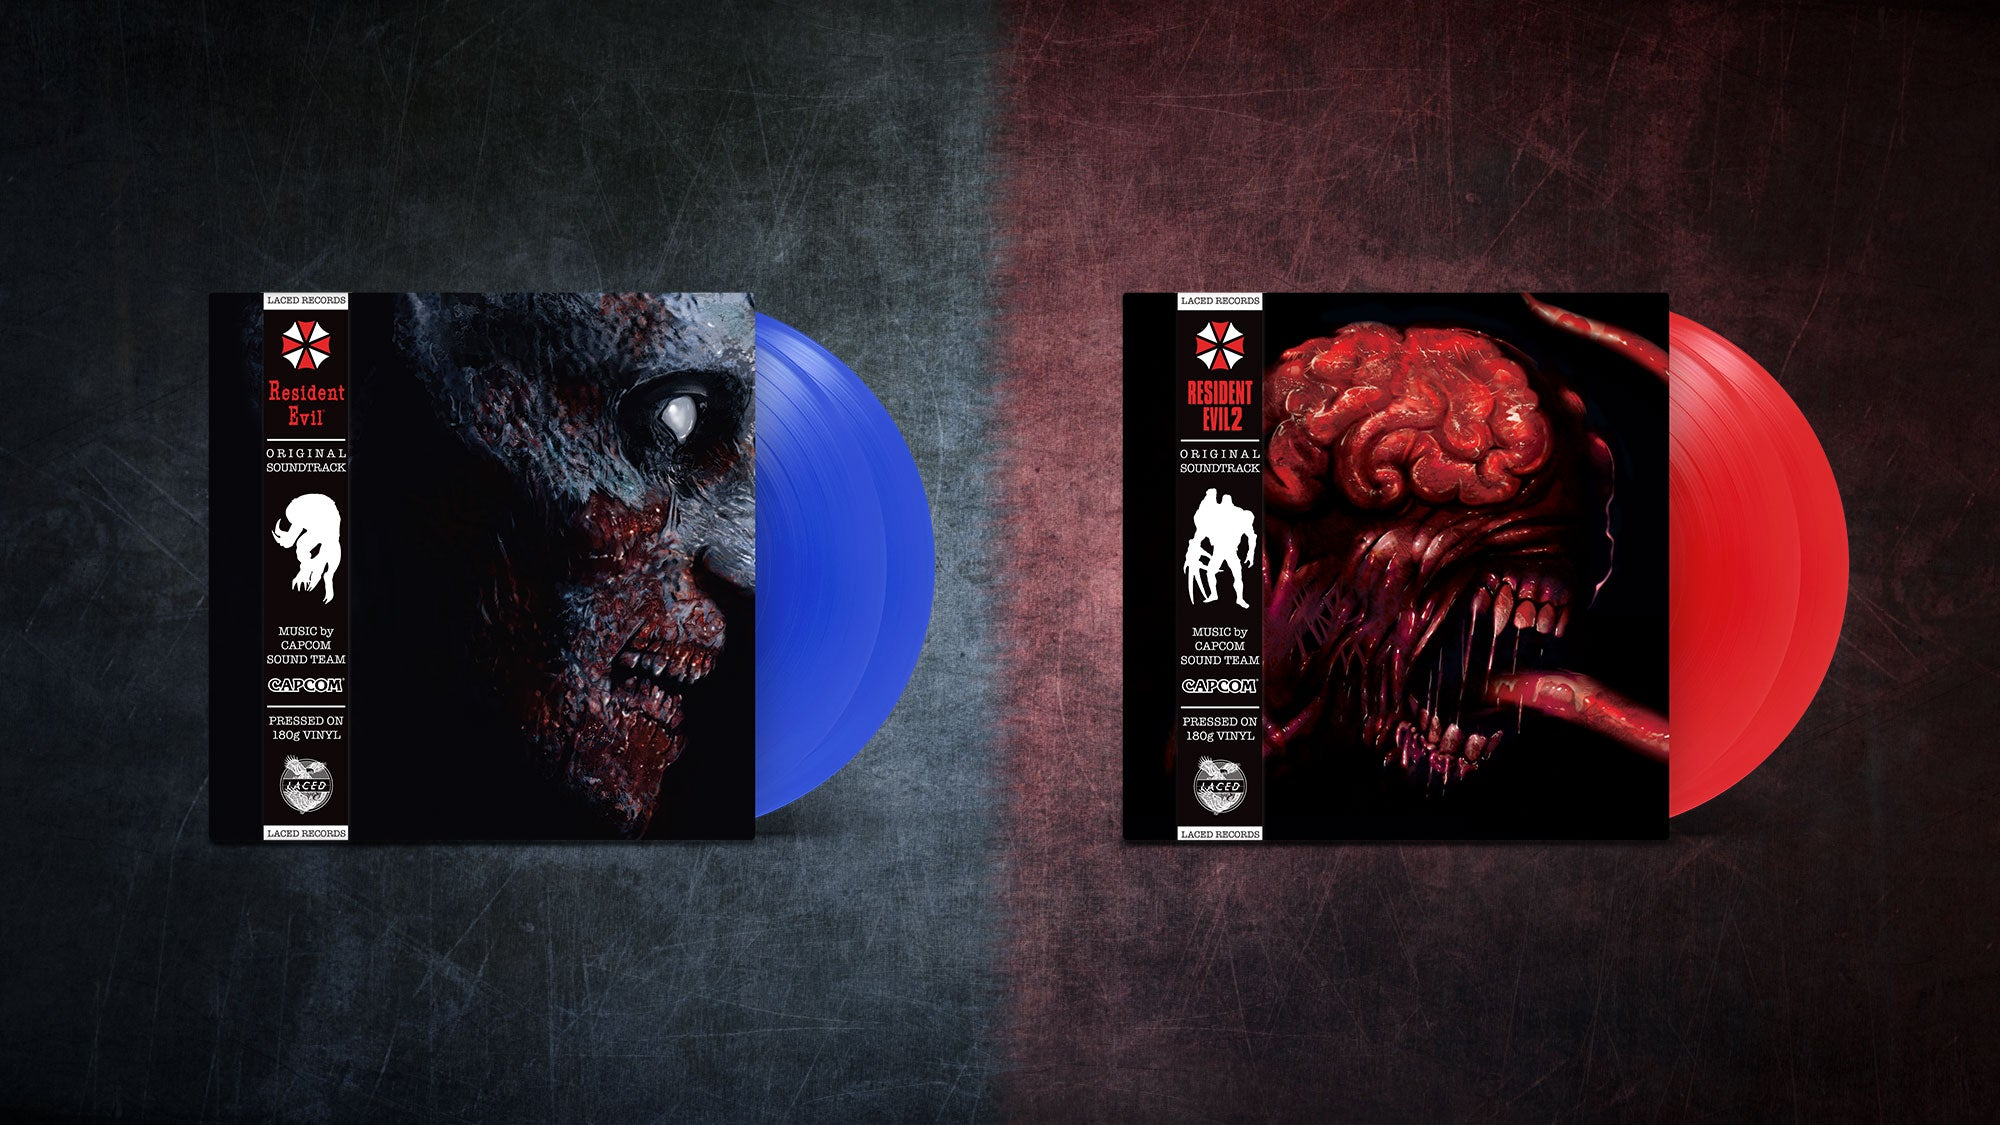 The Resident Evil 2002 and RE2 1998 soundtrack vinyl in blue and red respectively